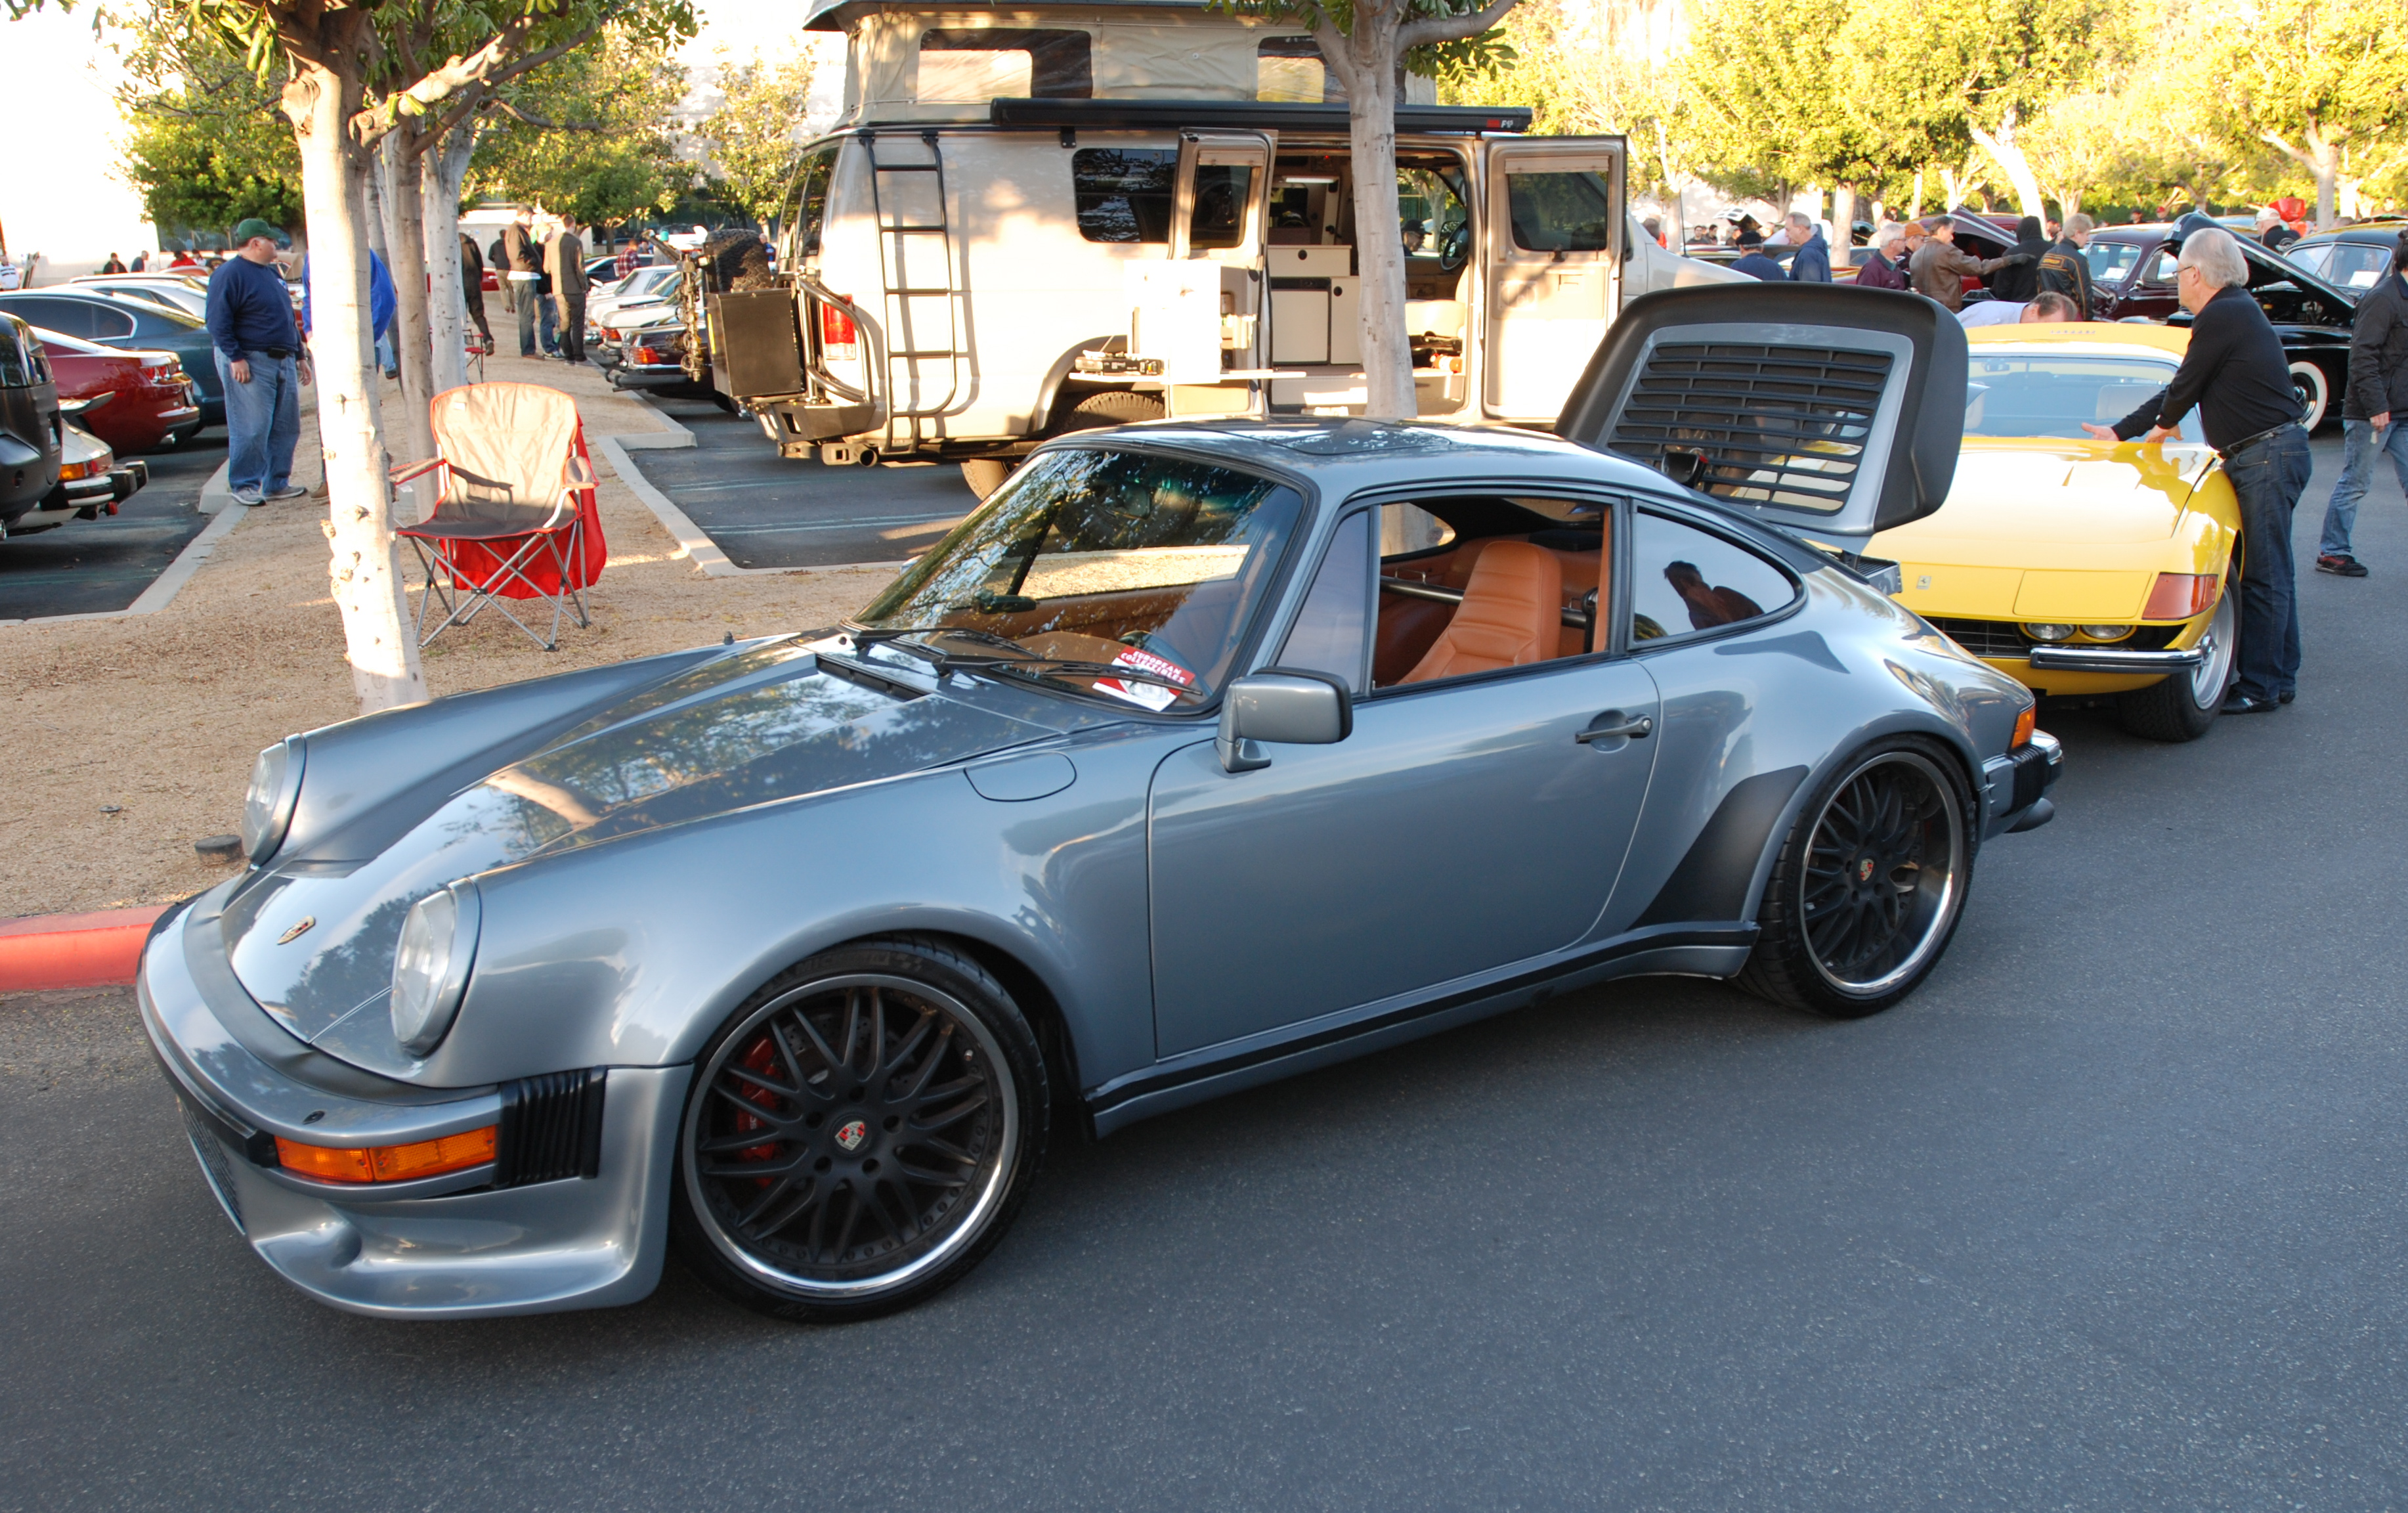 1984 Porsche 930 Turbo http://digitaldtour.com/2013/02/24/zagatos-spyders-daytonas-a-classic-alfa-one-porsche-911r-recreation-and-some-911-friends/